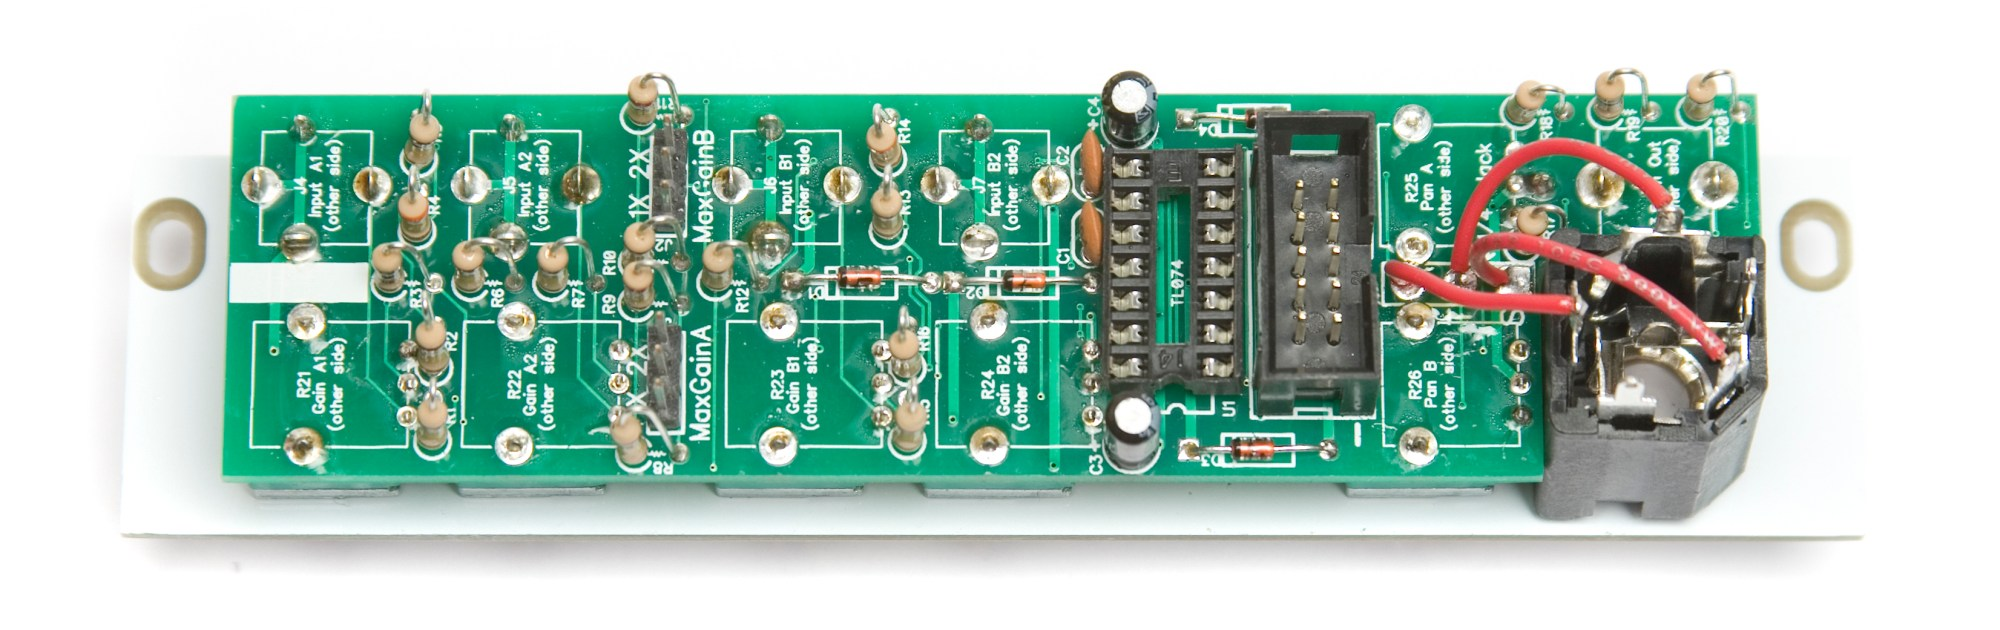 hight resolution of mst stereo output mixer 1 4 jack soldered